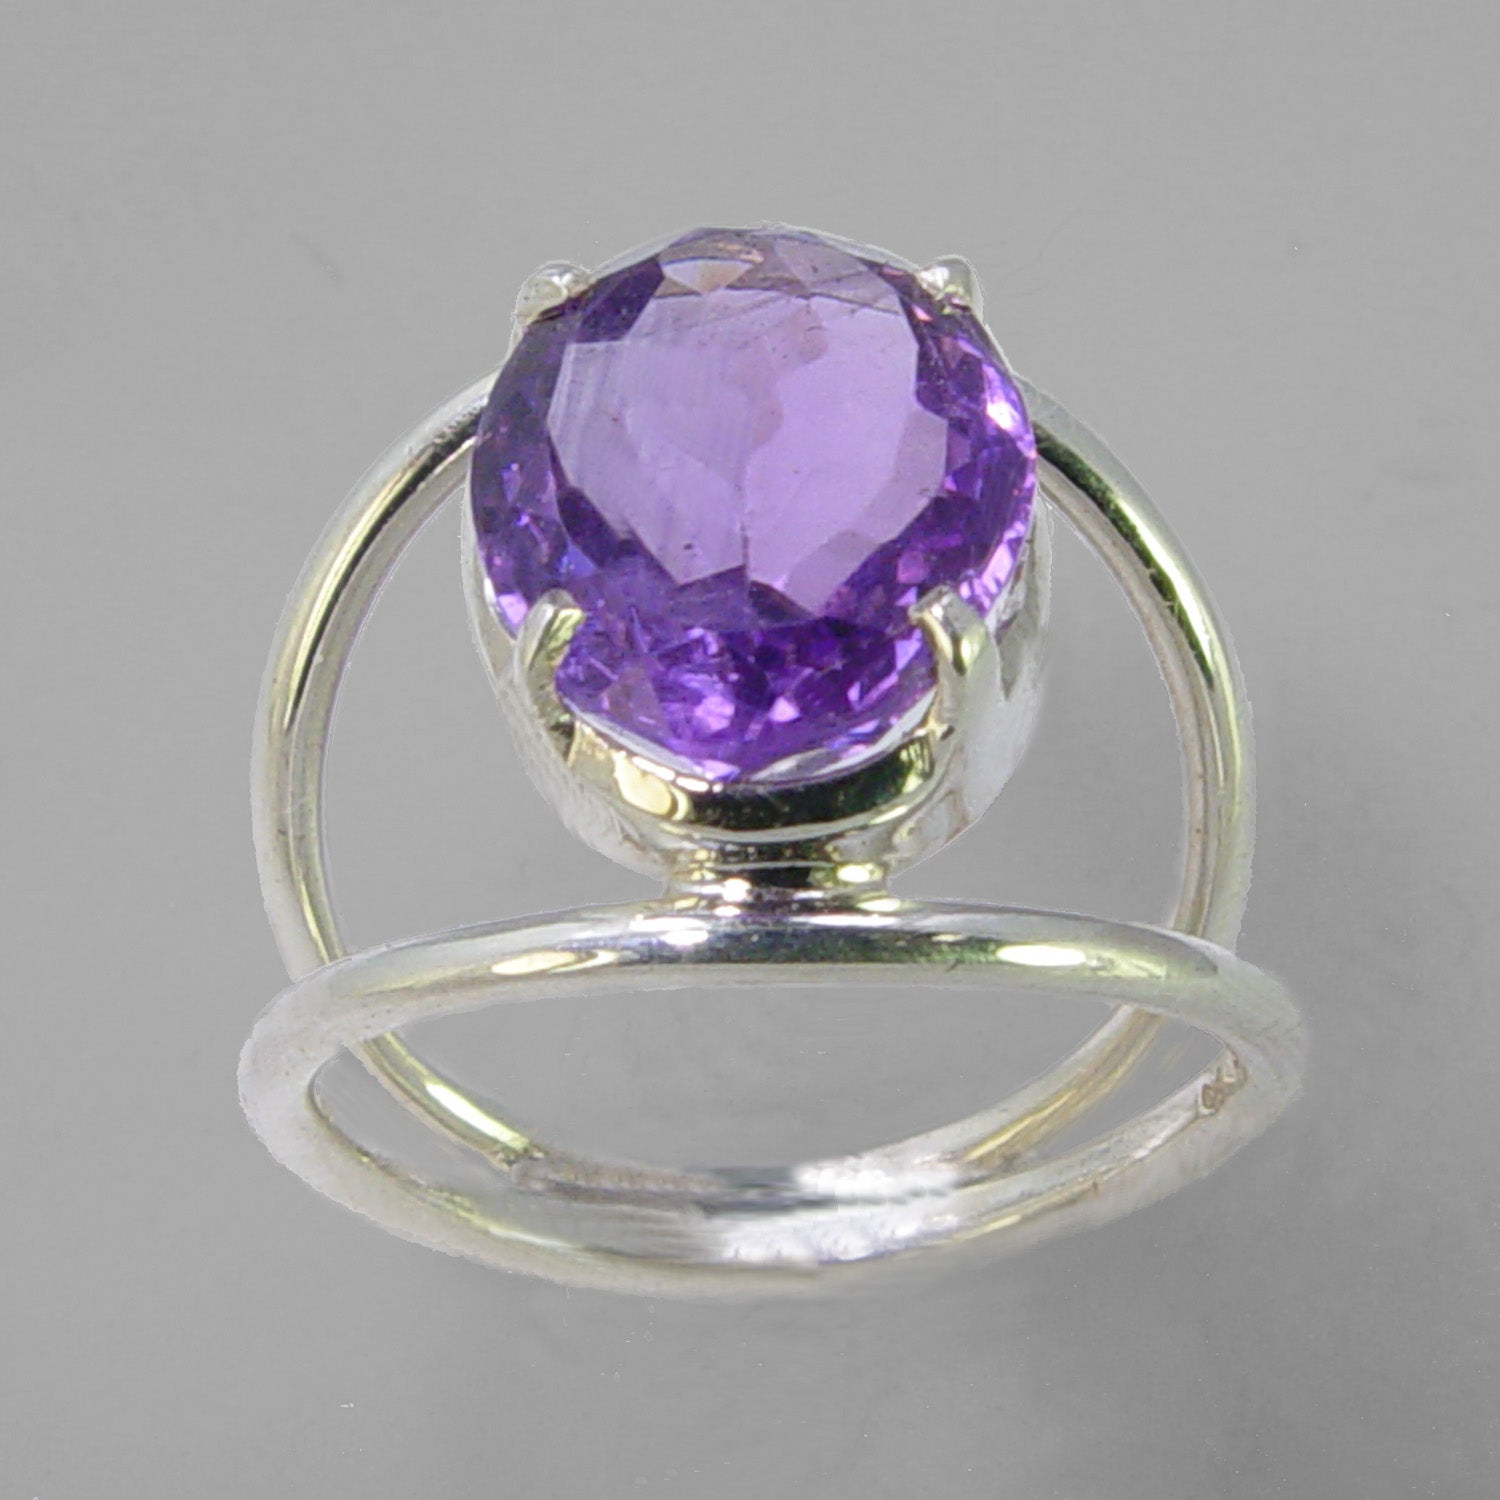 Amethyst 4.7 ct Oval Sterling Silver Ring, Size 7.5